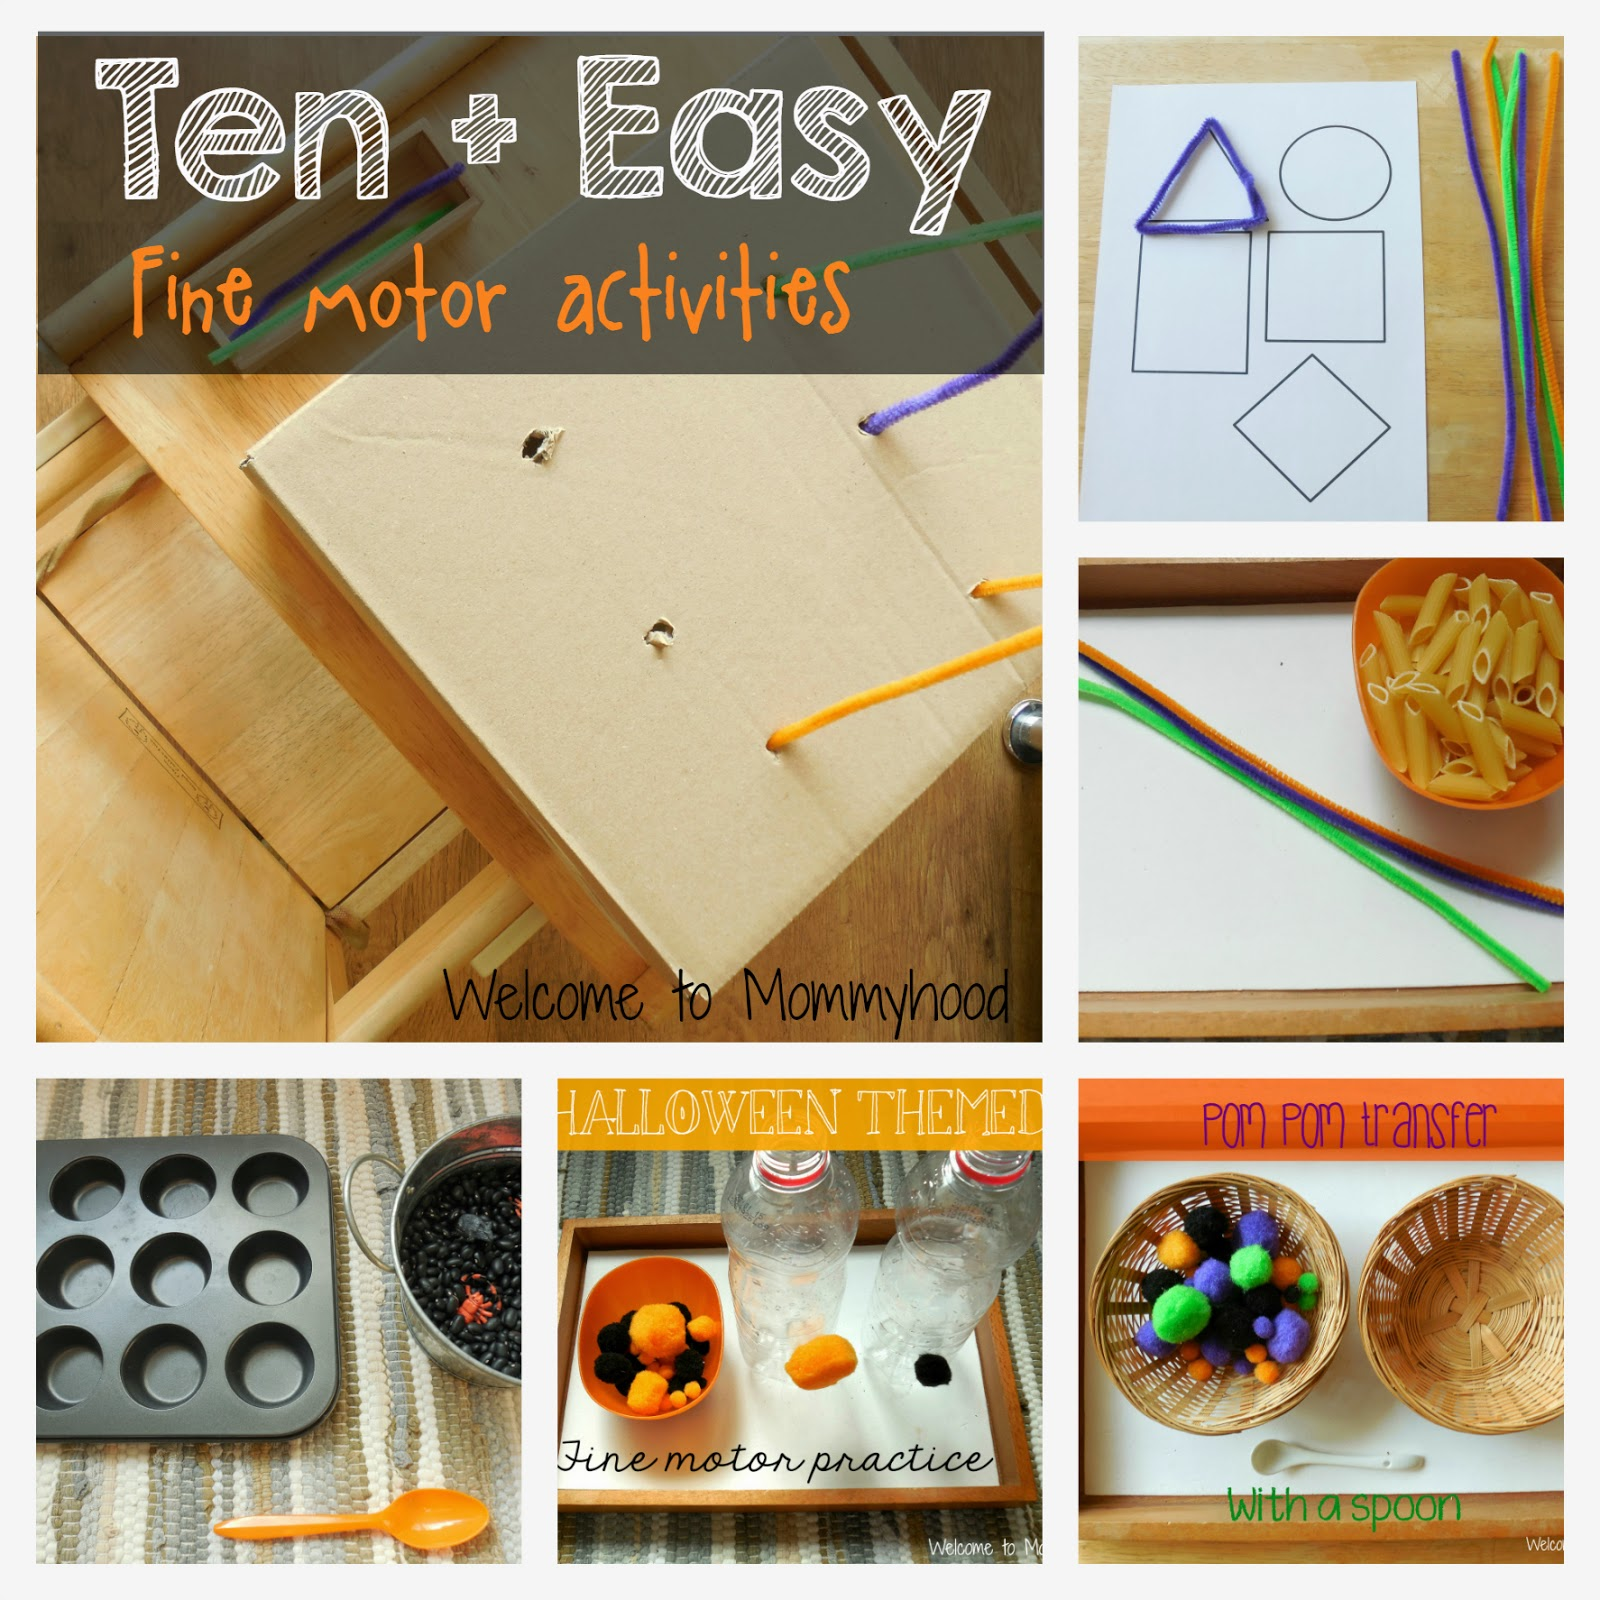 Fine motor activities for preschoolers (and toddlers) by Welcome to Mommyhood #Montessori #FineMotorActivitiesforPreschoolers #Totschool